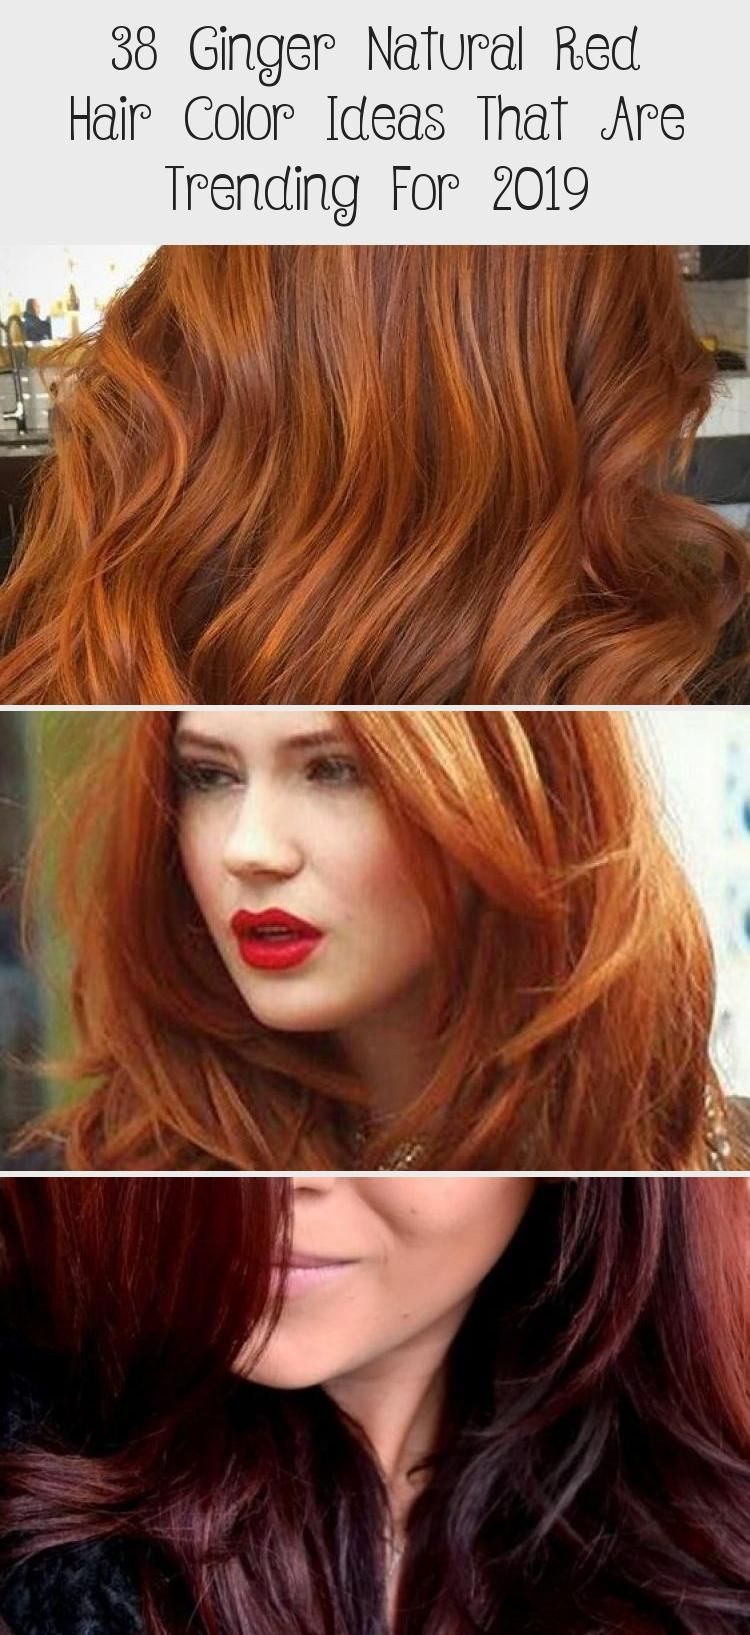 38 Ginger Natural Red Hair Color Ideas That Are Trending For 2019 Ginger Natura Color In 2020 Red Hair Color Natural Red Hair Hair Color